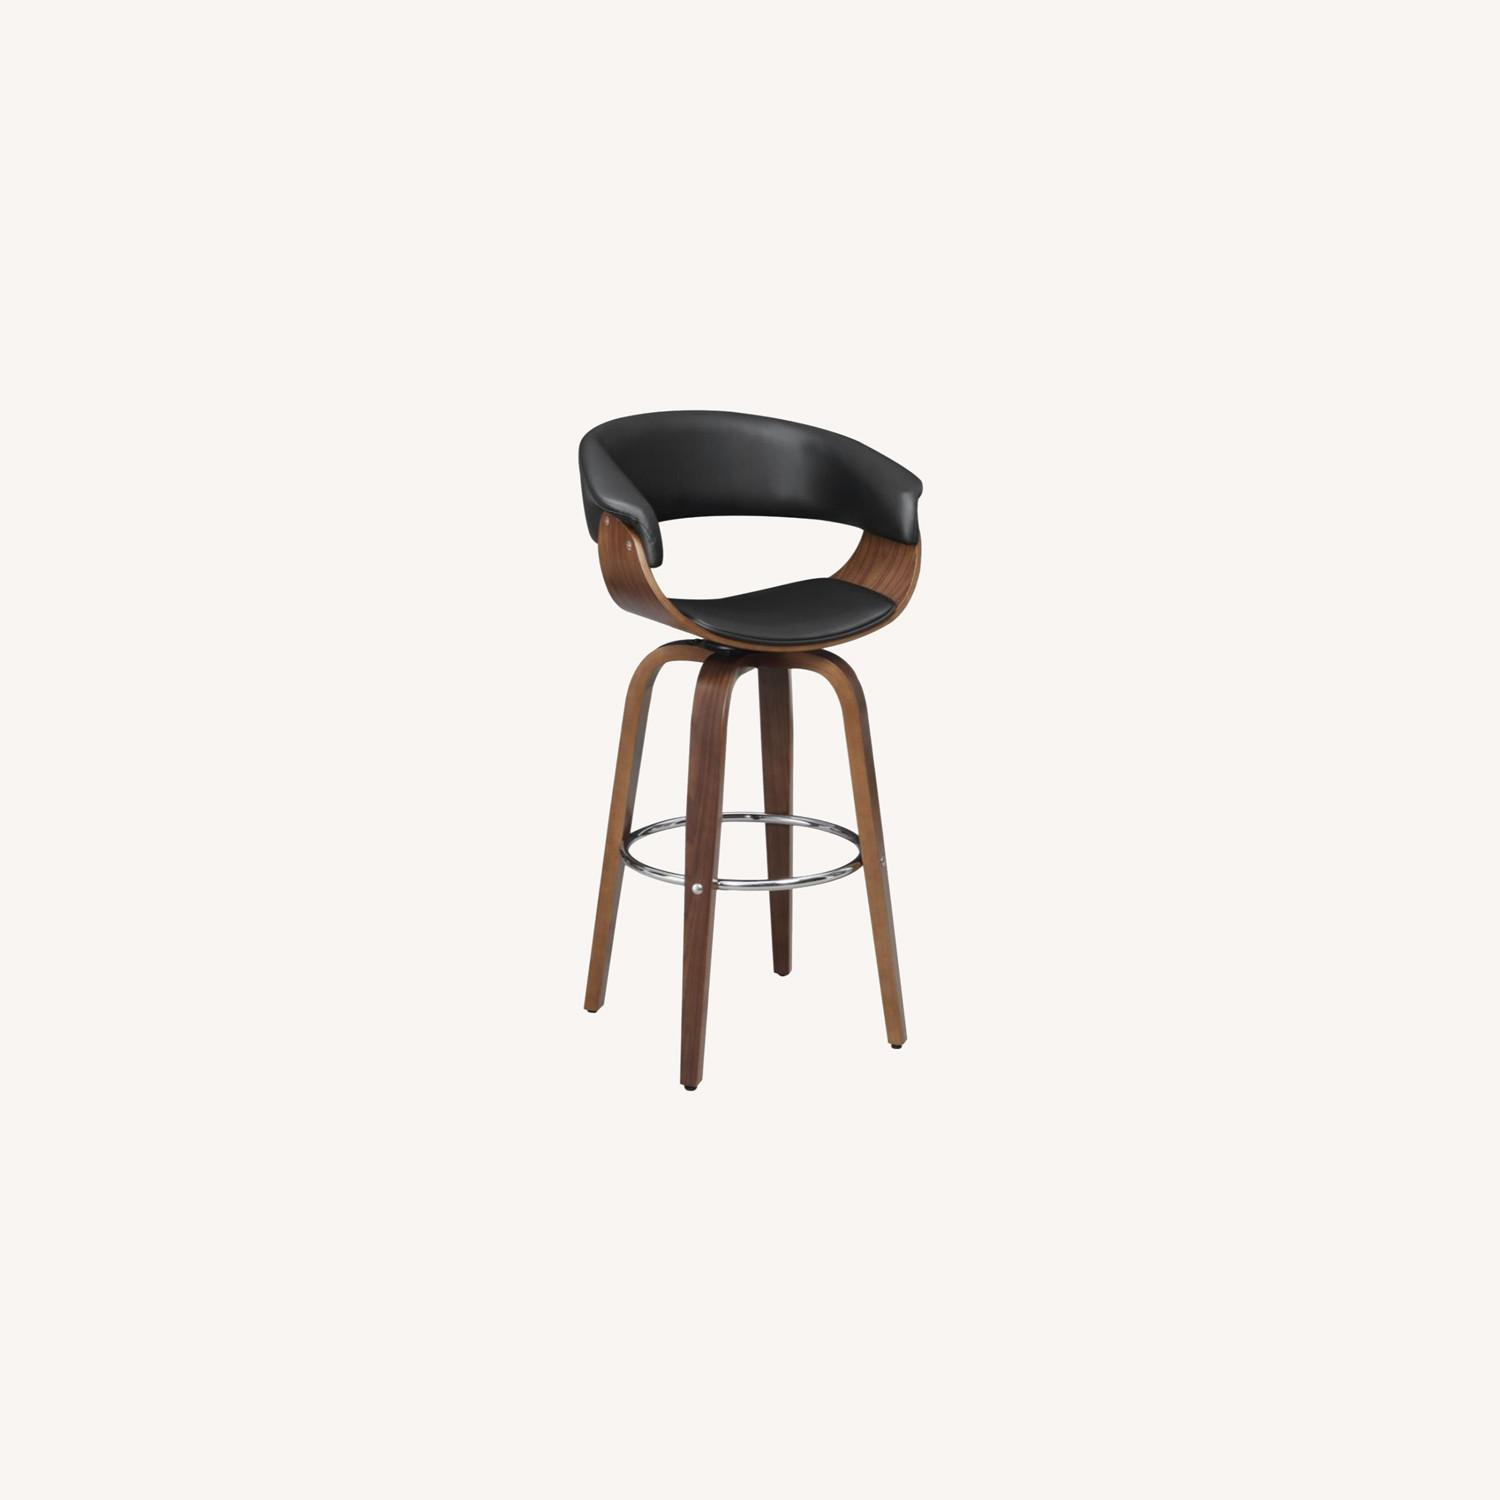 Swivel Bar Stool In Black Faux Leather Upholstery - image-9